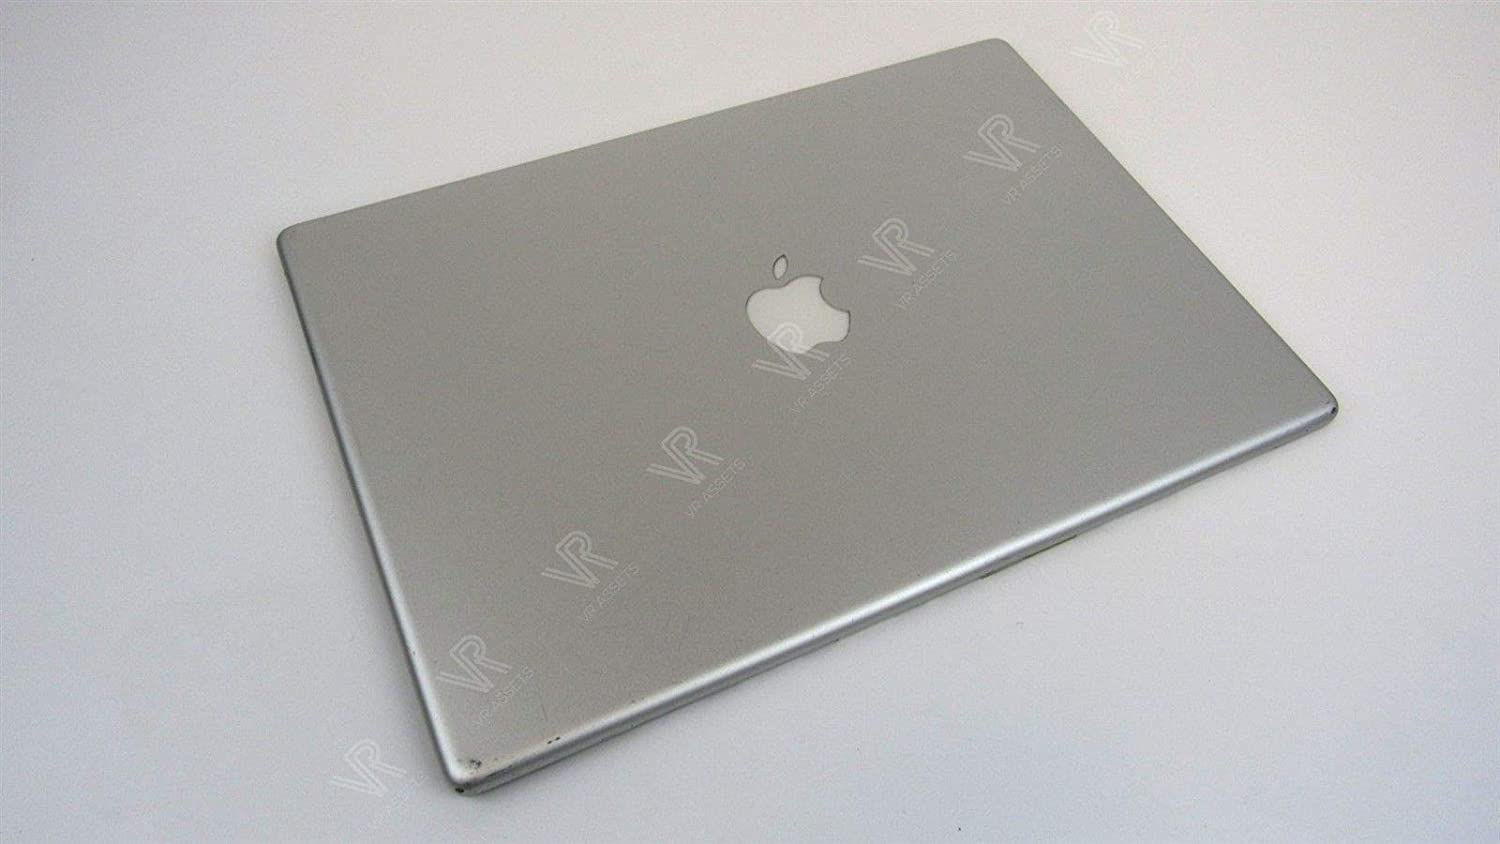 Apple PowerBook G4 Aluminum 15 A1106 LCD Screen Rear Lid Top Cover 613-4990